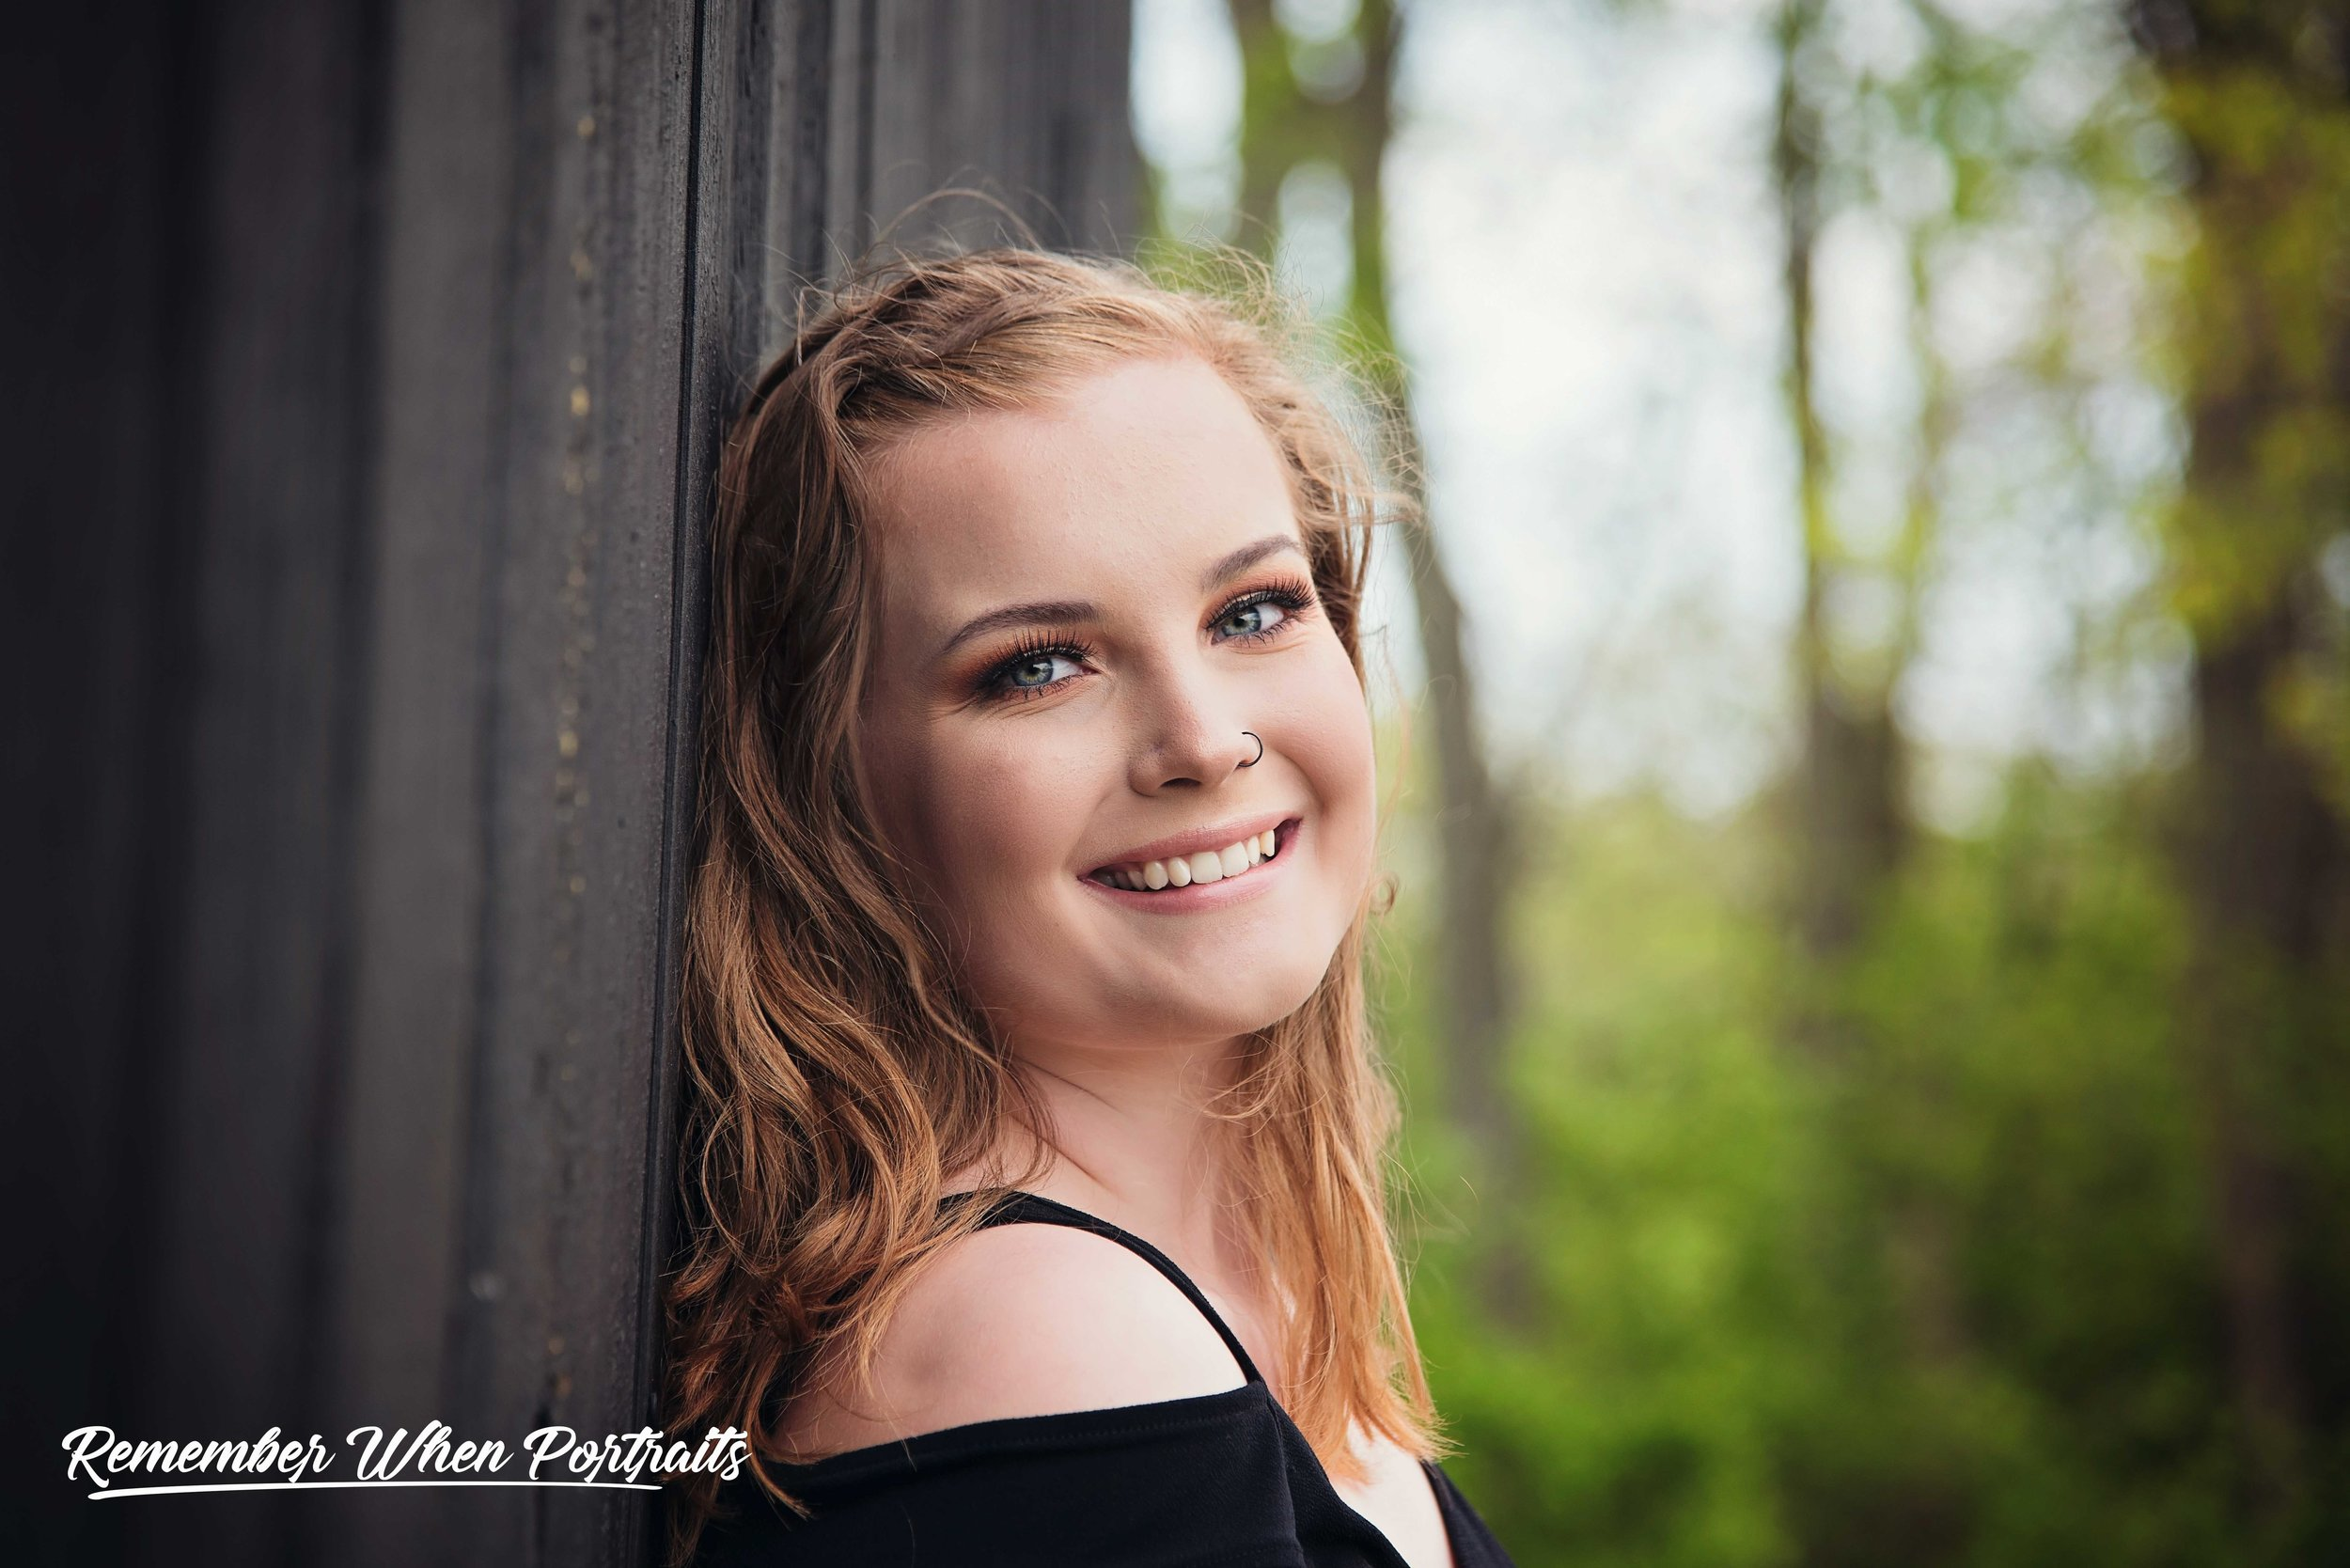 Mia Turner Cincinnati Ohio Senior Pictures Remember When Portraits